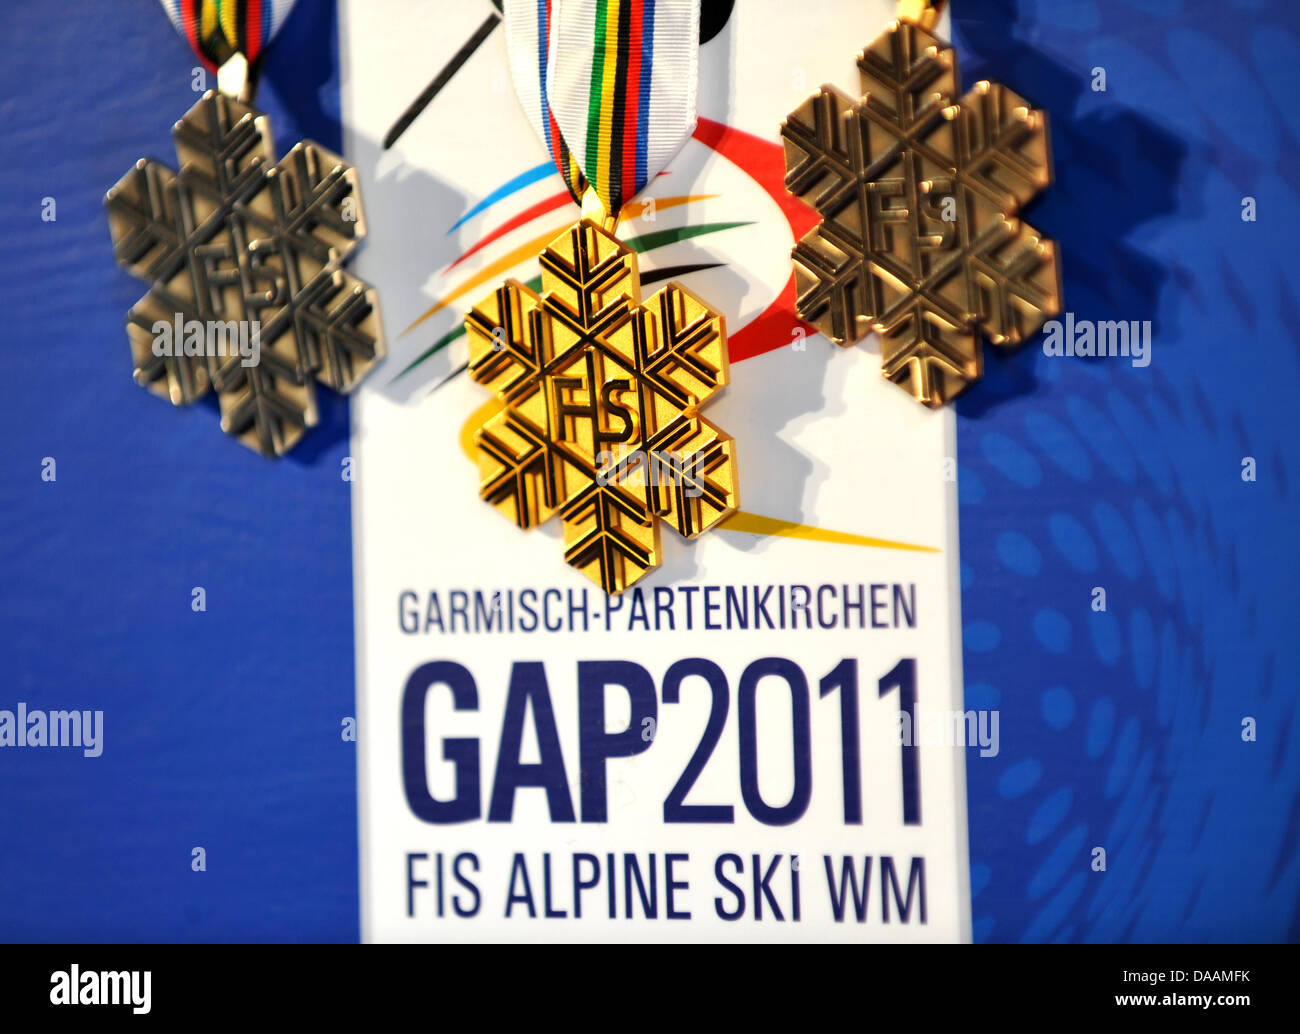 The medals of the International Ski Association FIS in silver (l-r), gold and bronze hang over the logo of the GAP - Stock Image